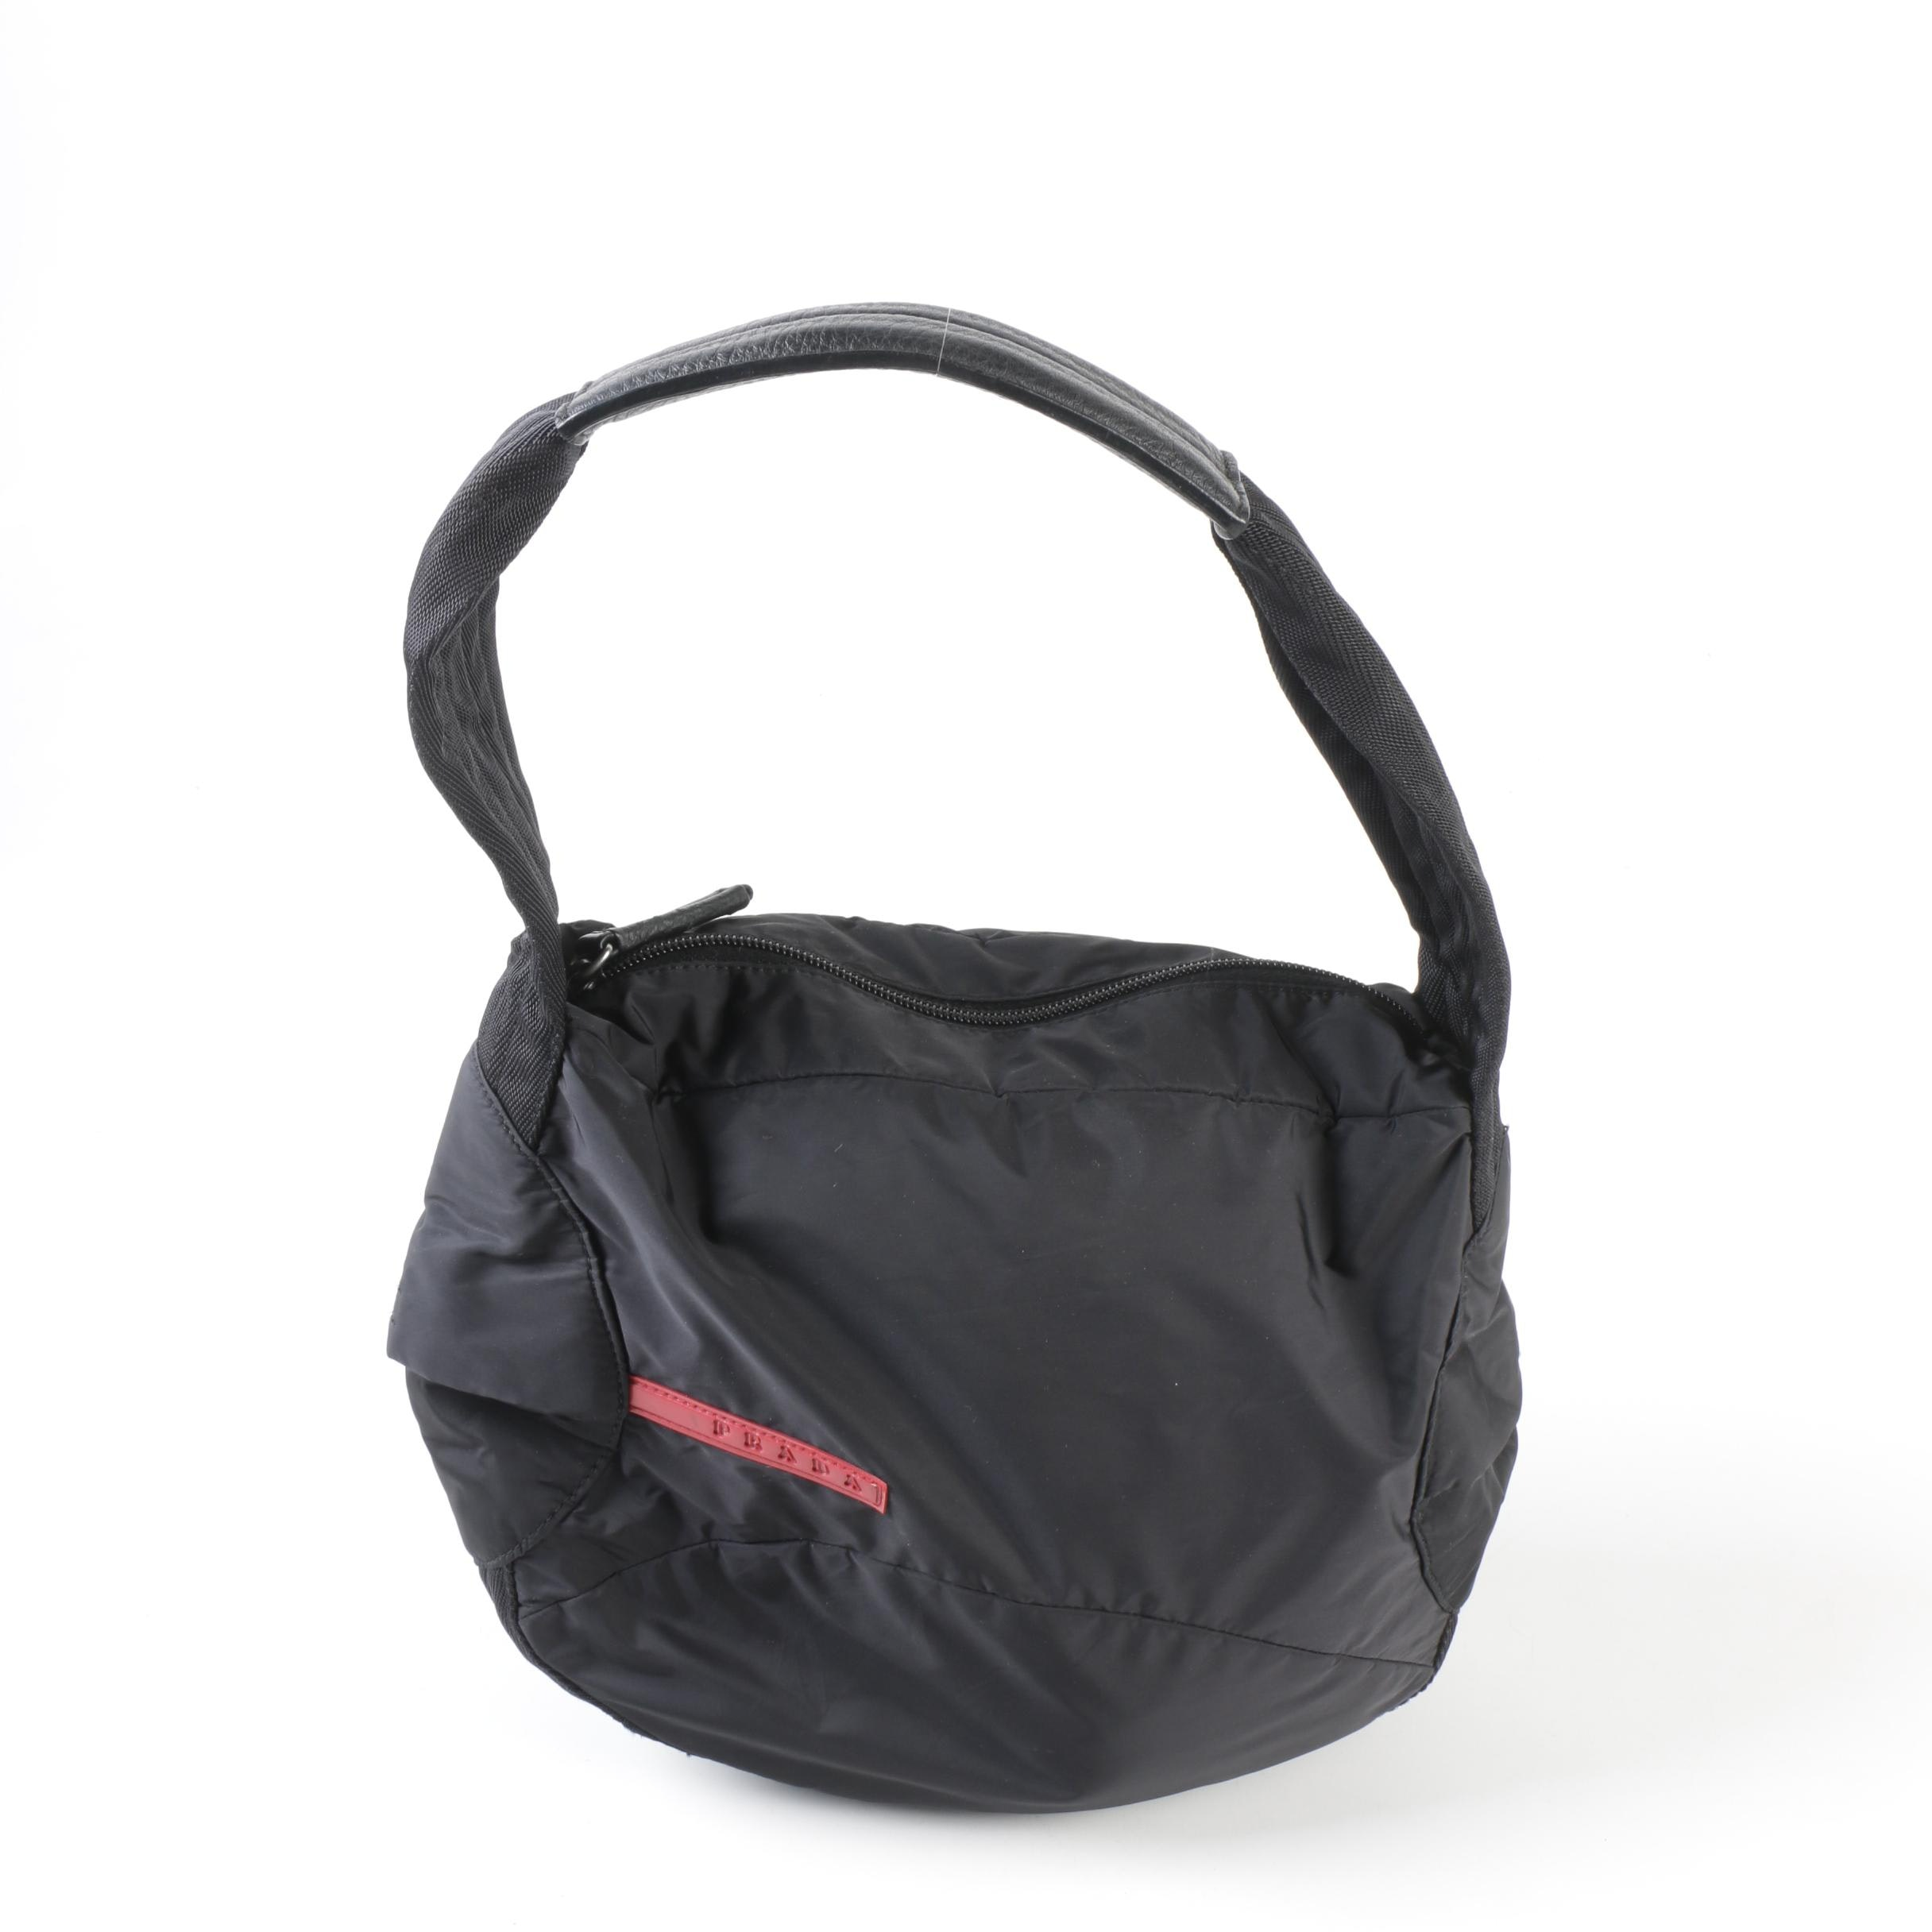 Prada Black Sport Nylon 4VA356 Shoulder Bag